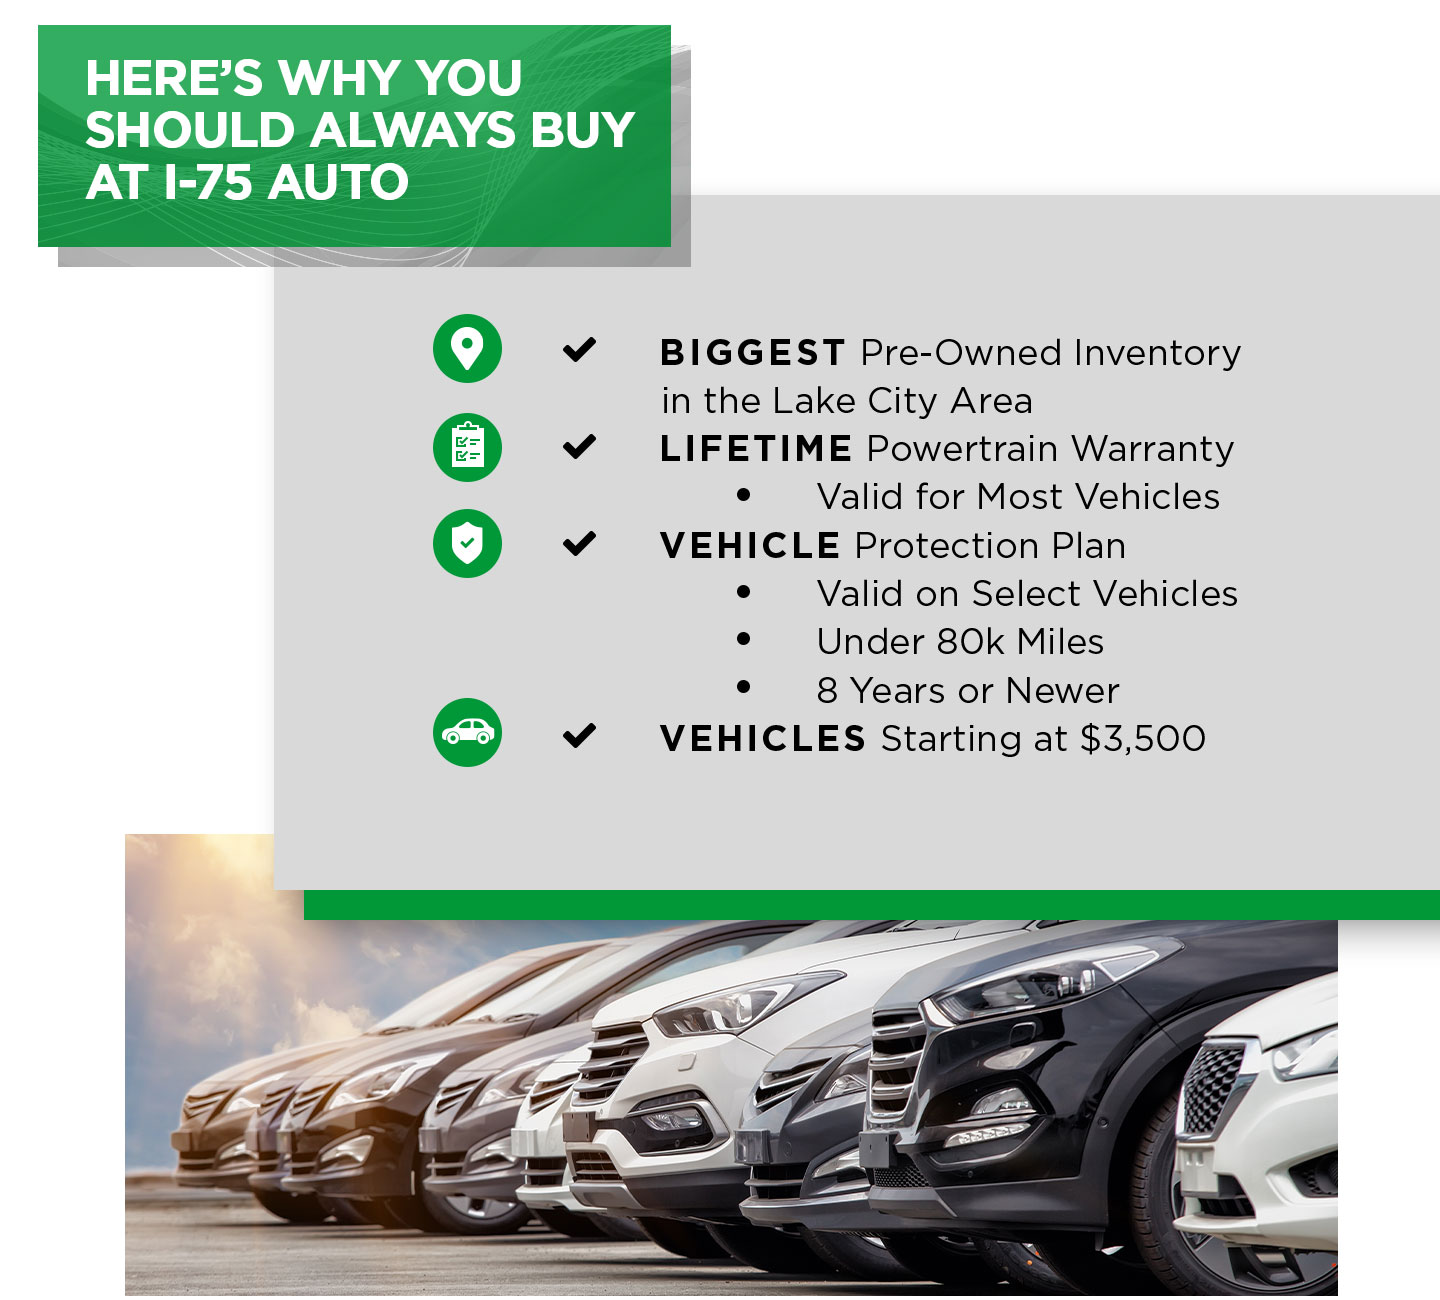 Heres why you should always buy at I-75 Auto